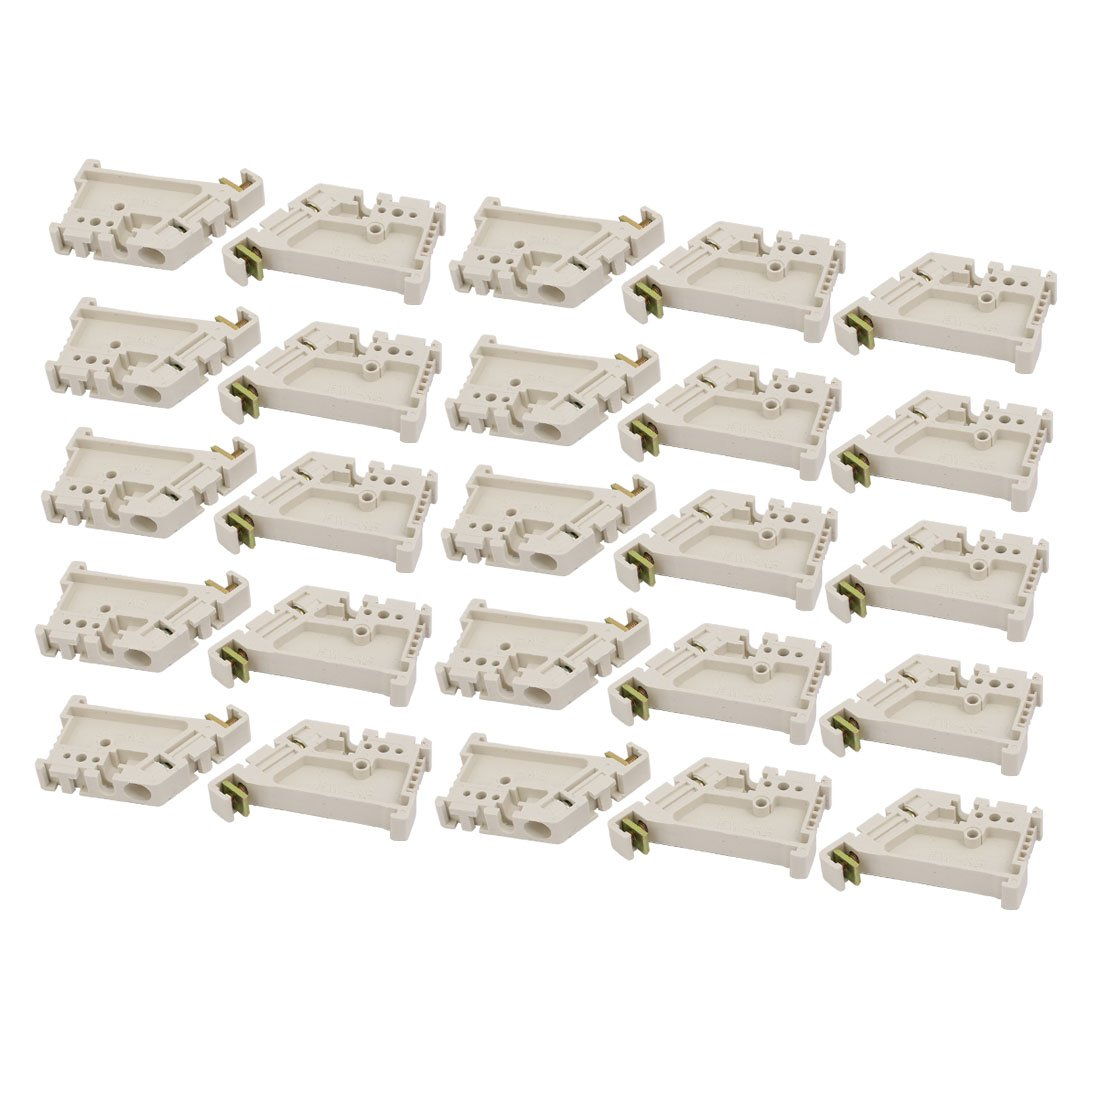 uxcell 25 Pcs White Plastic 35mm DIN Rail Support For Fixing Terminal Board